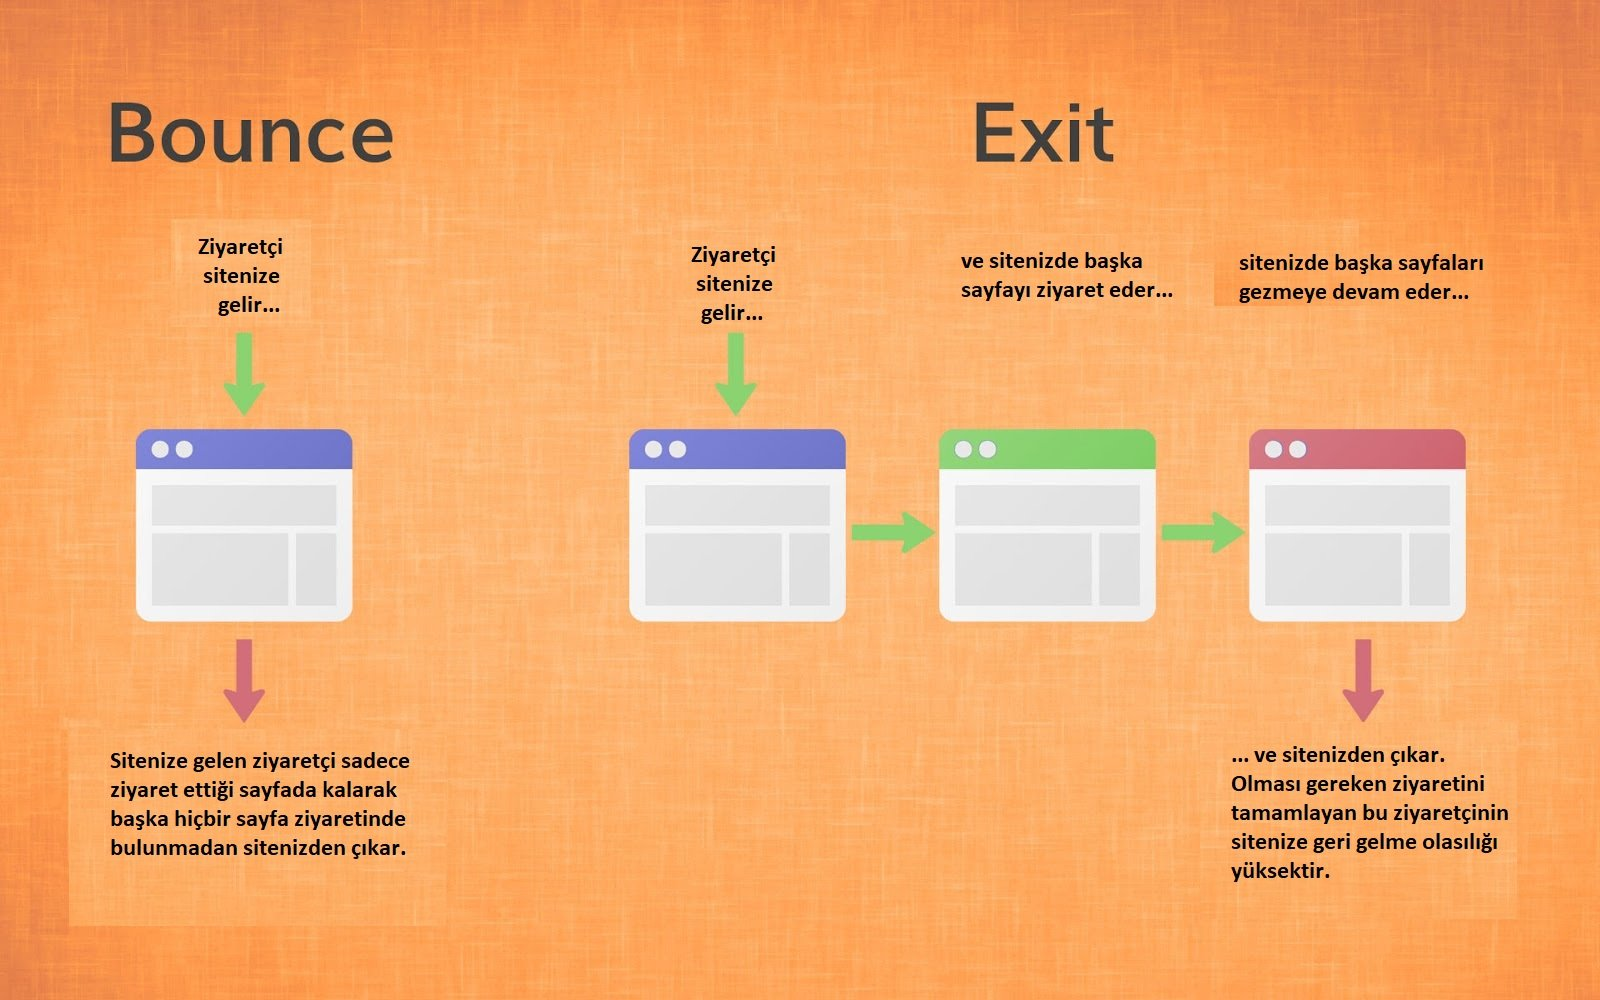 Bounce Rate Exit Rate Nedir